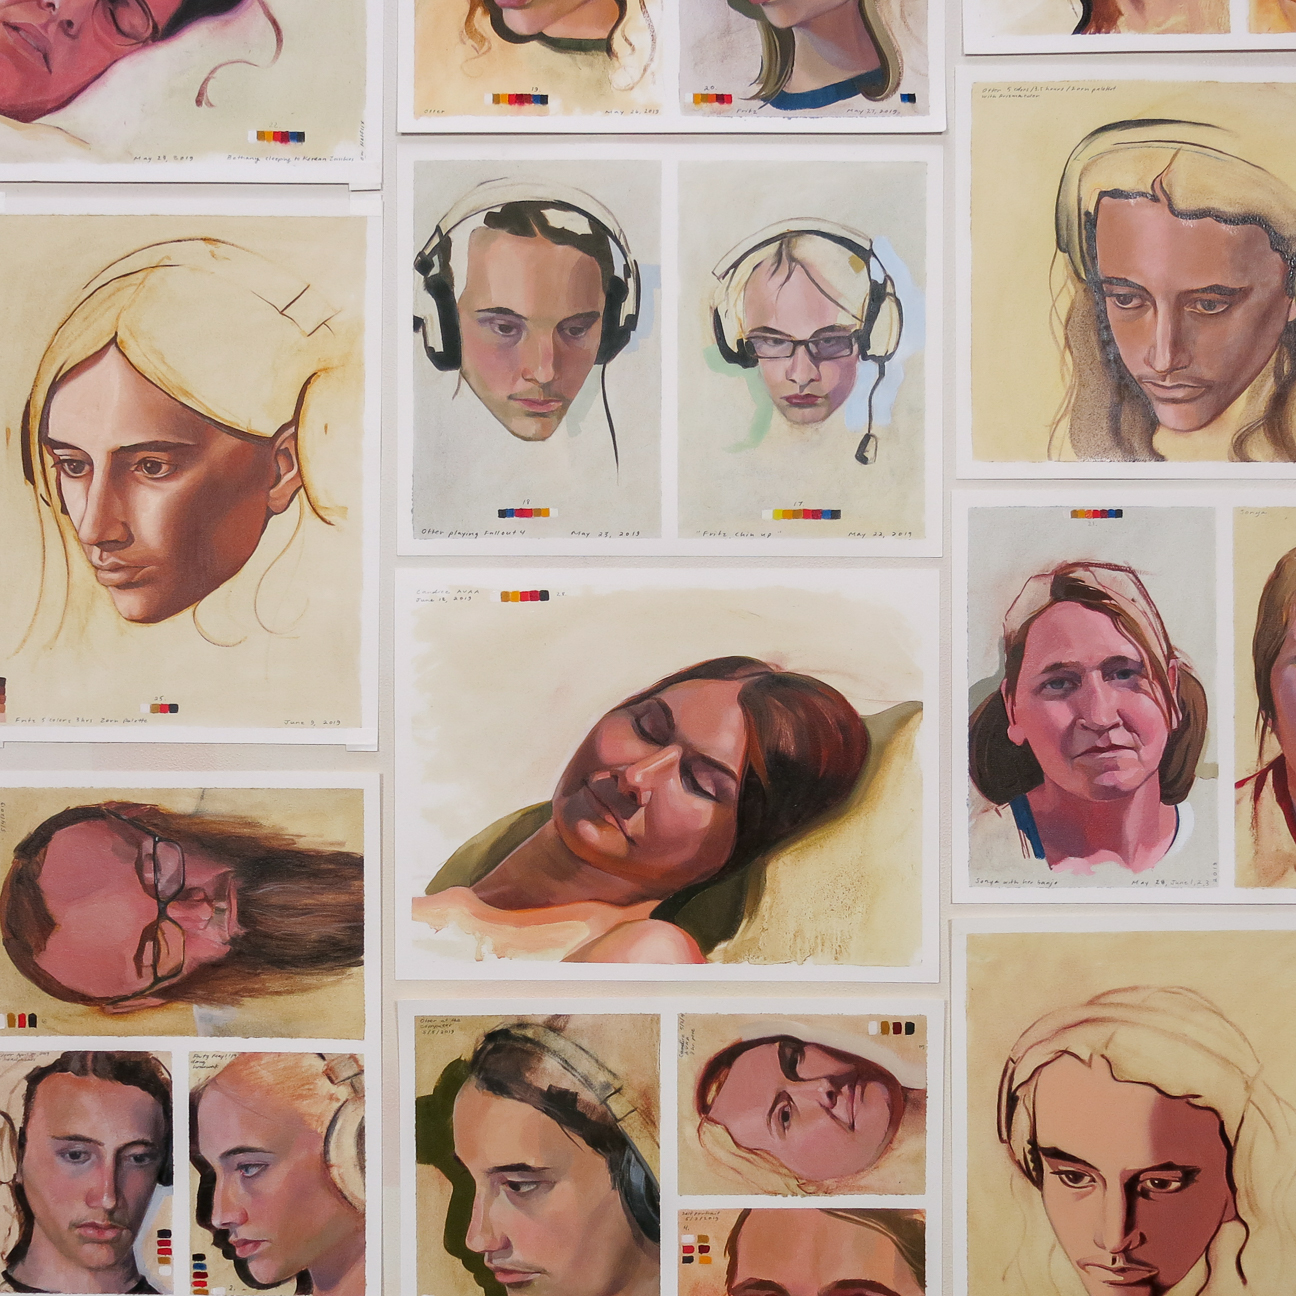 Gabel Karsten,  Study Wall: Studies From Life  (detail), oil on paper, 2019